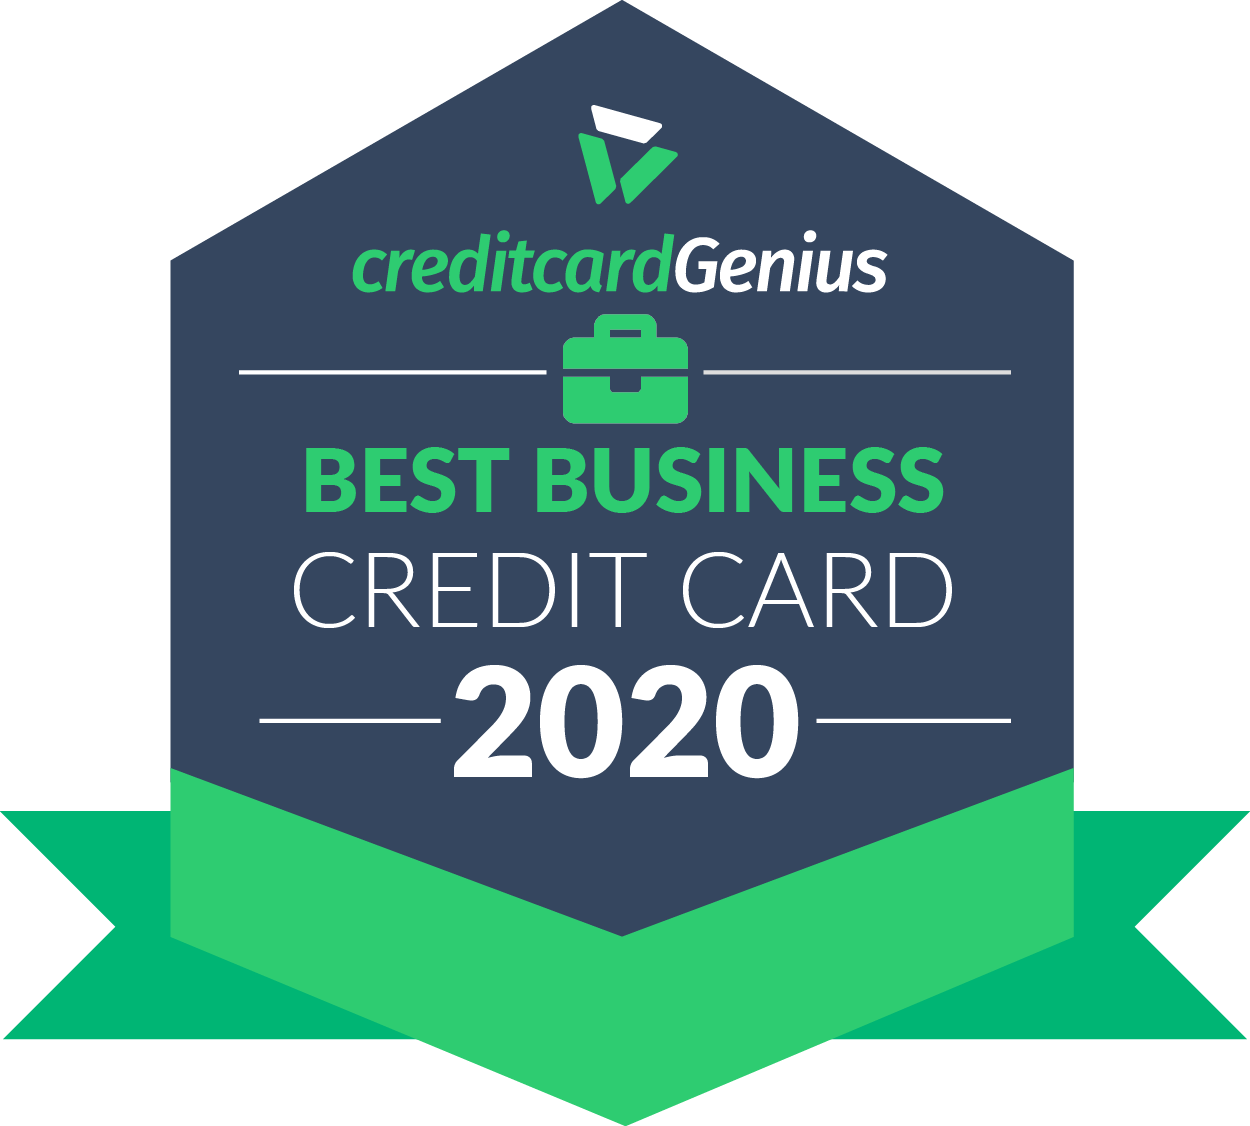 Best business credit card in Canada for 2020 award seal